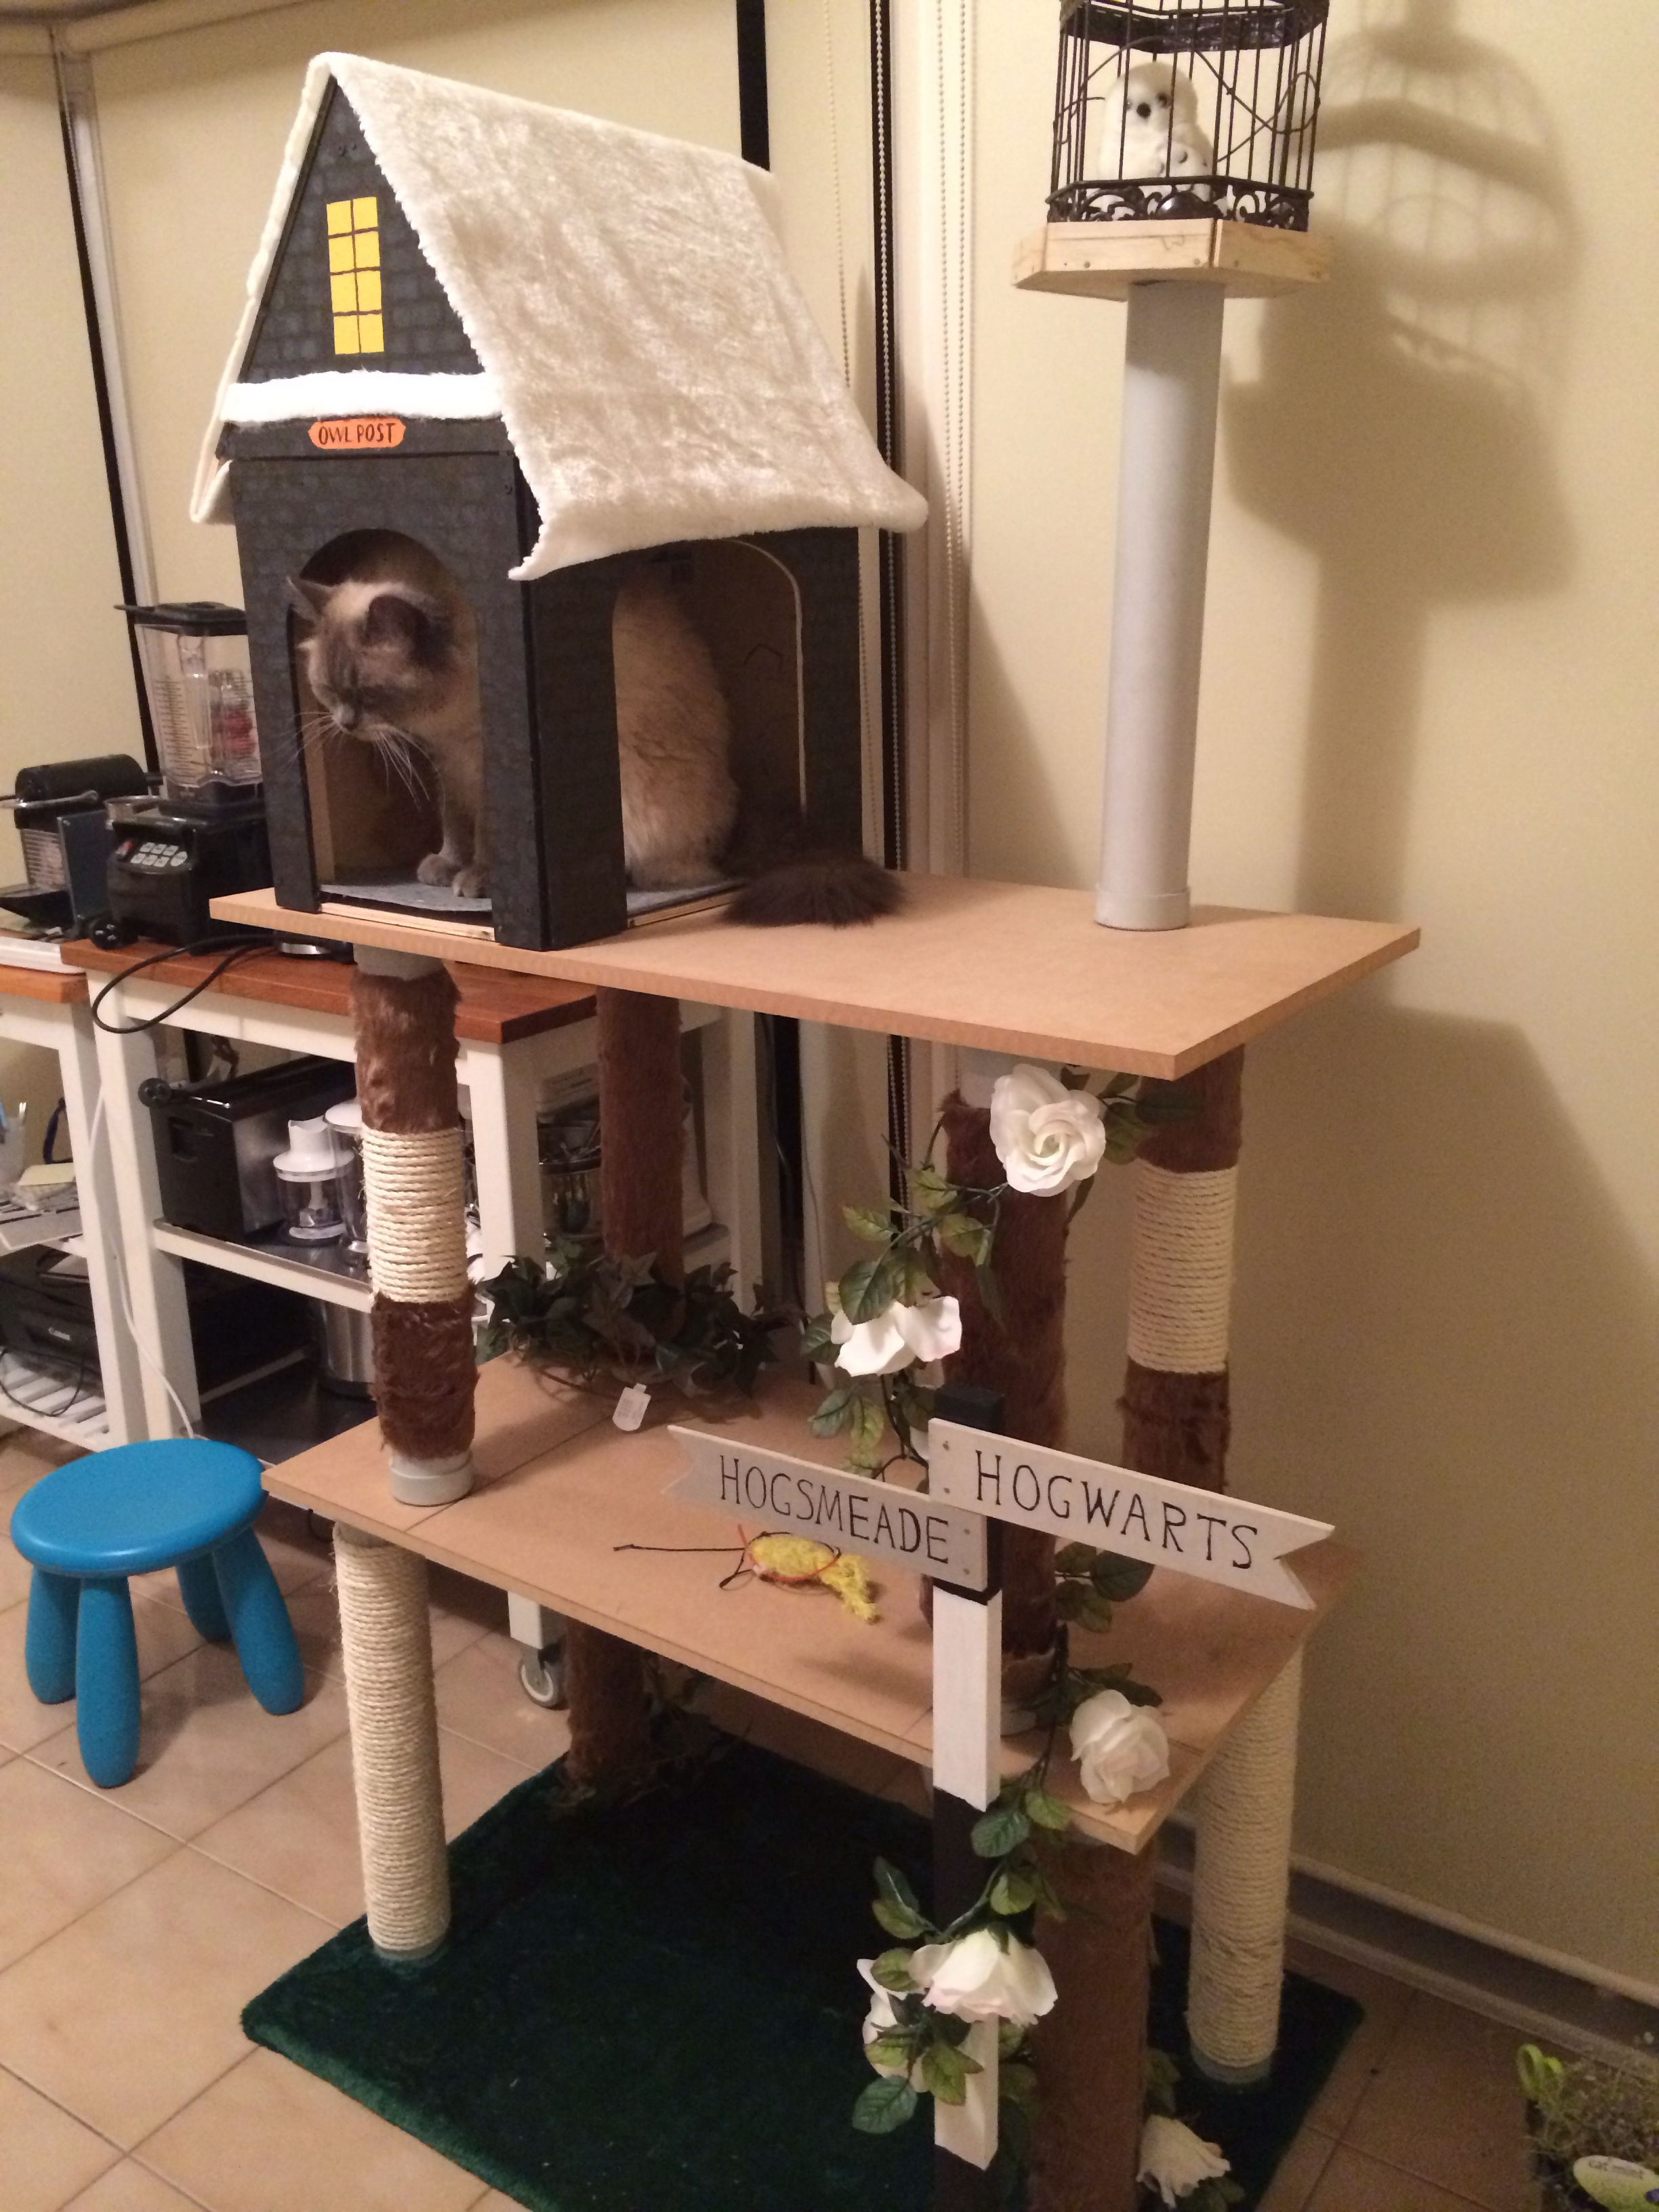 Diy harry potter cat tree. All levels together Harry